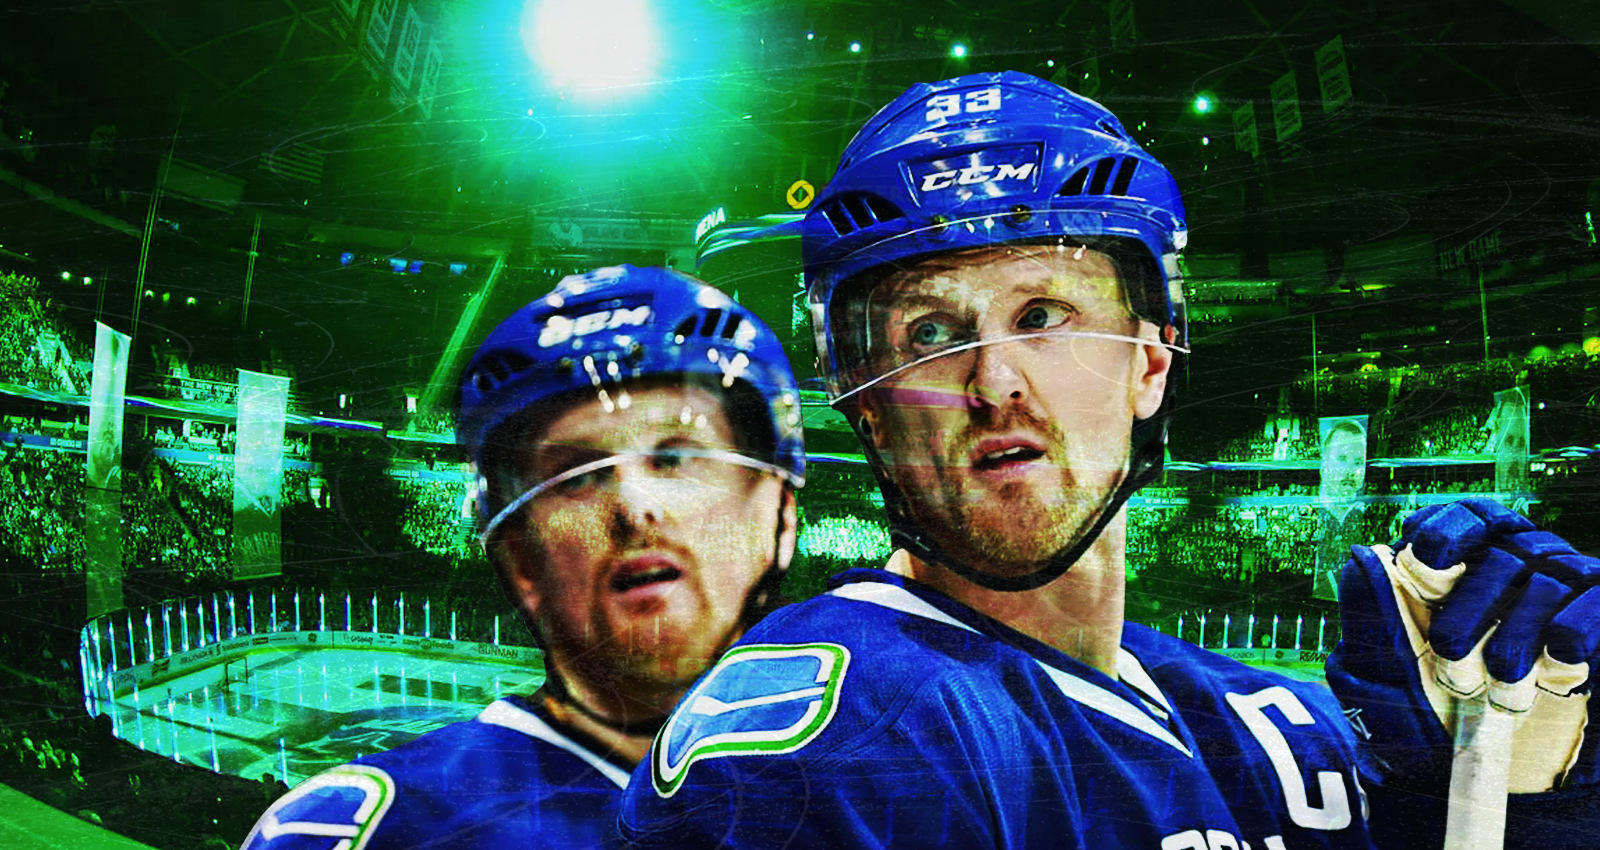 9a0cbc499 The Sedins Brought Out the Worst in Hockey Culture - Grandstand Central